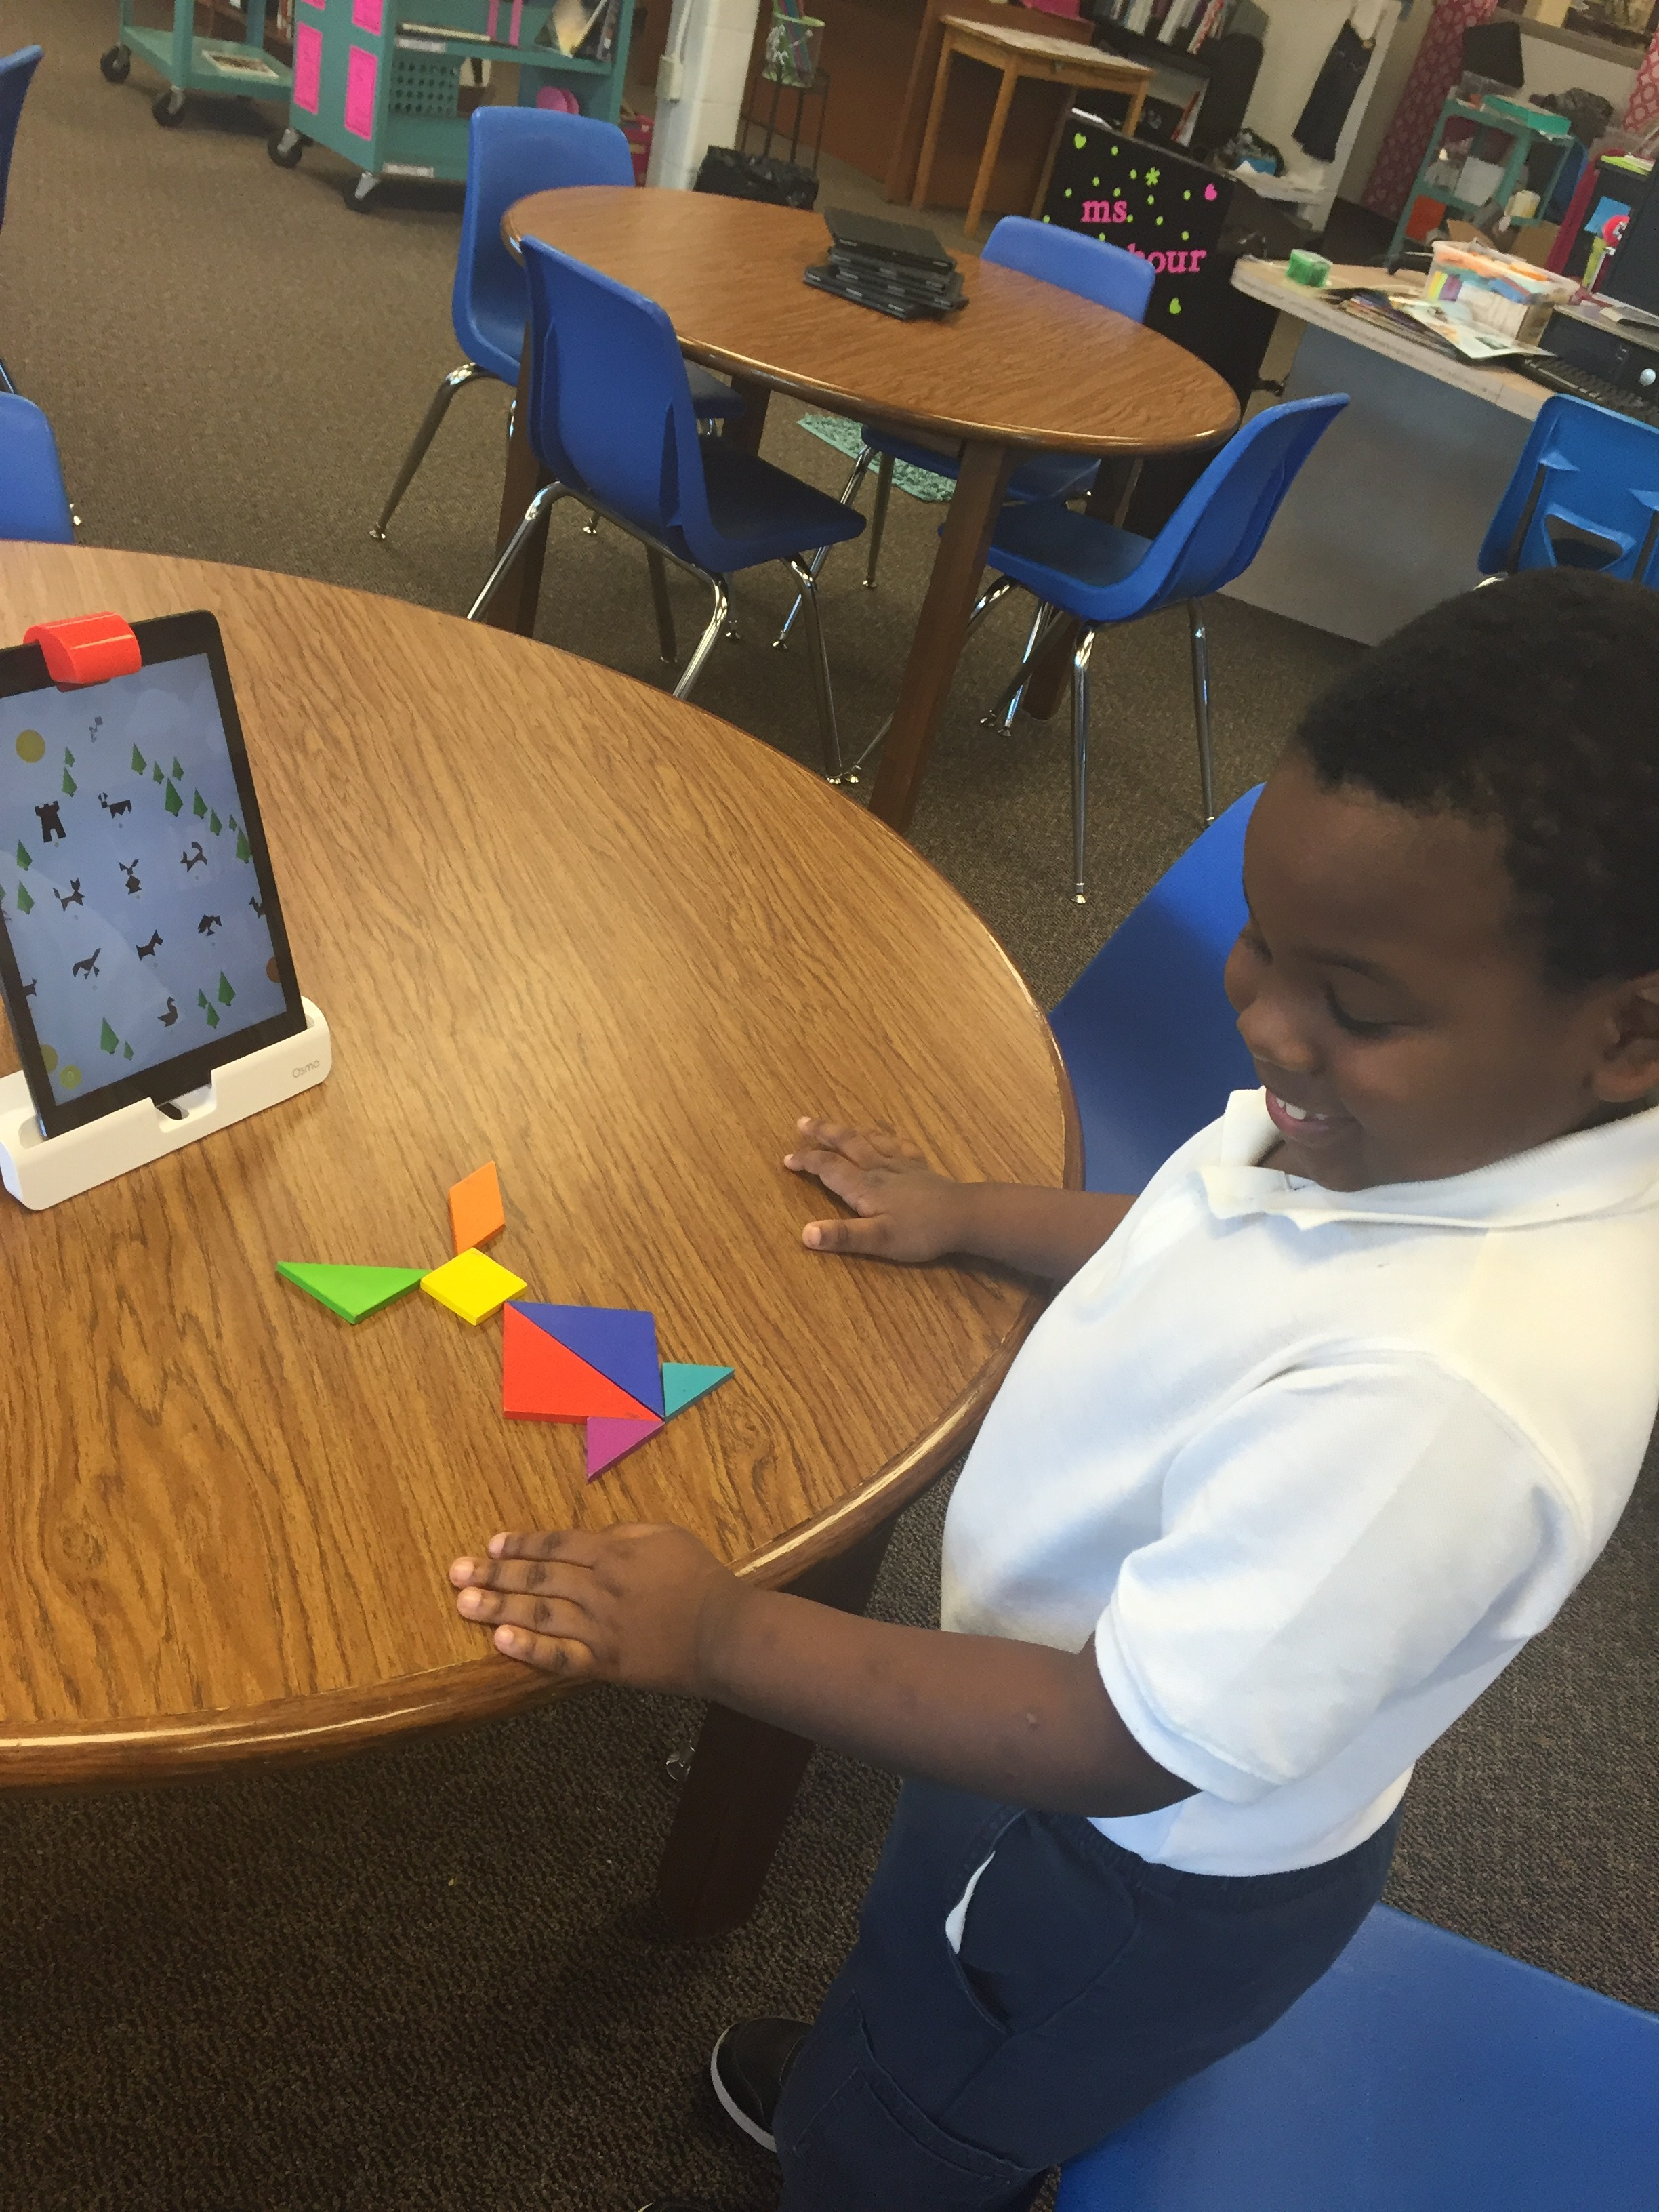 boy showing work with Ipad and tangleo's